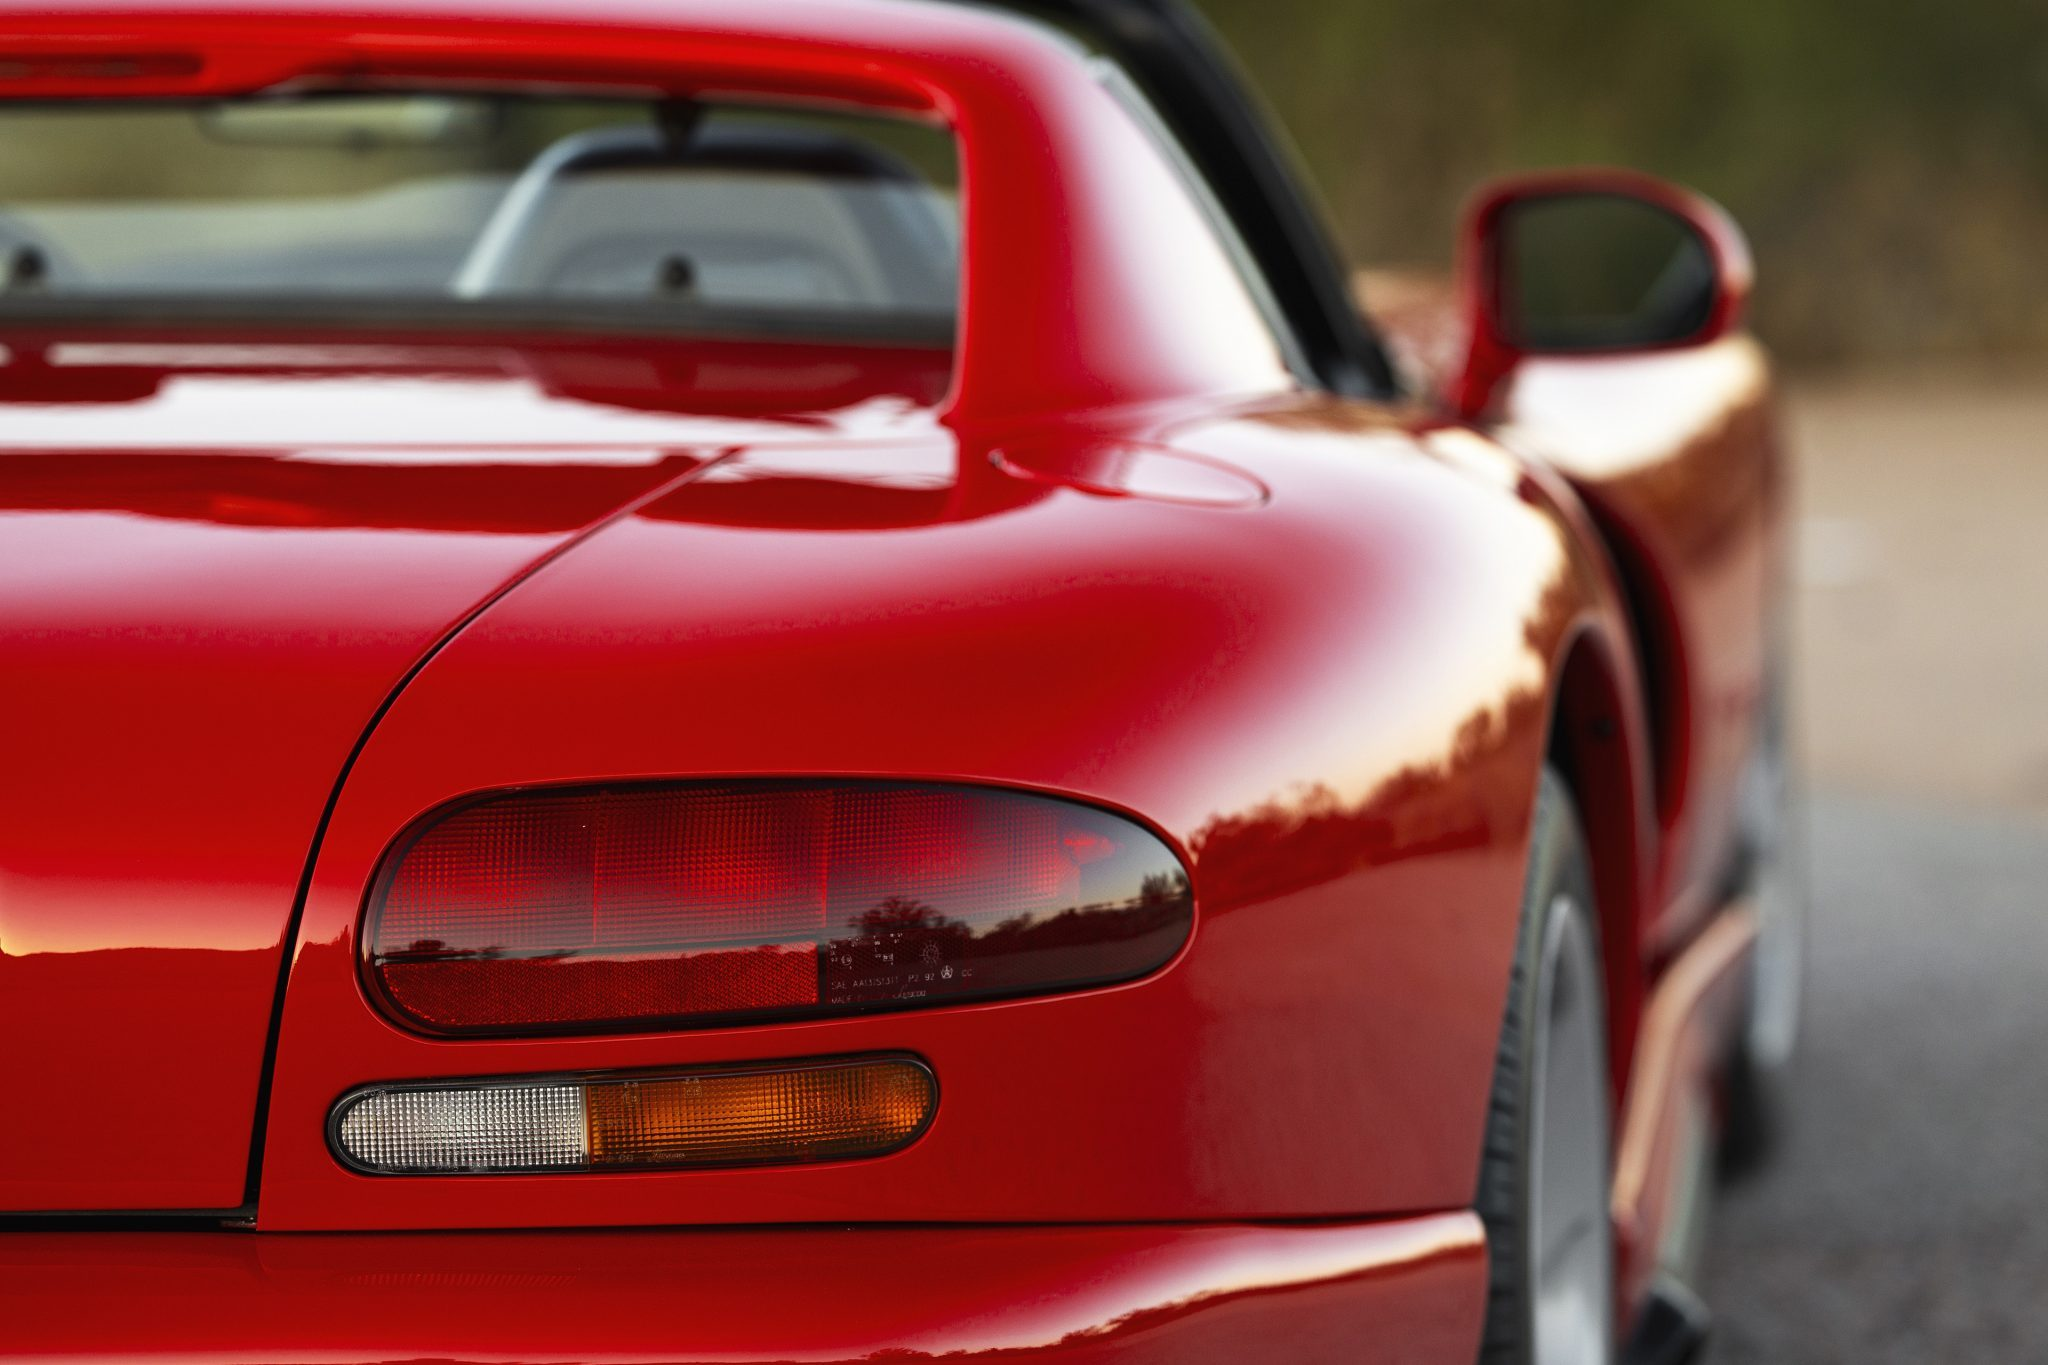 1992 Dodge Viper RT-10 rear side view close